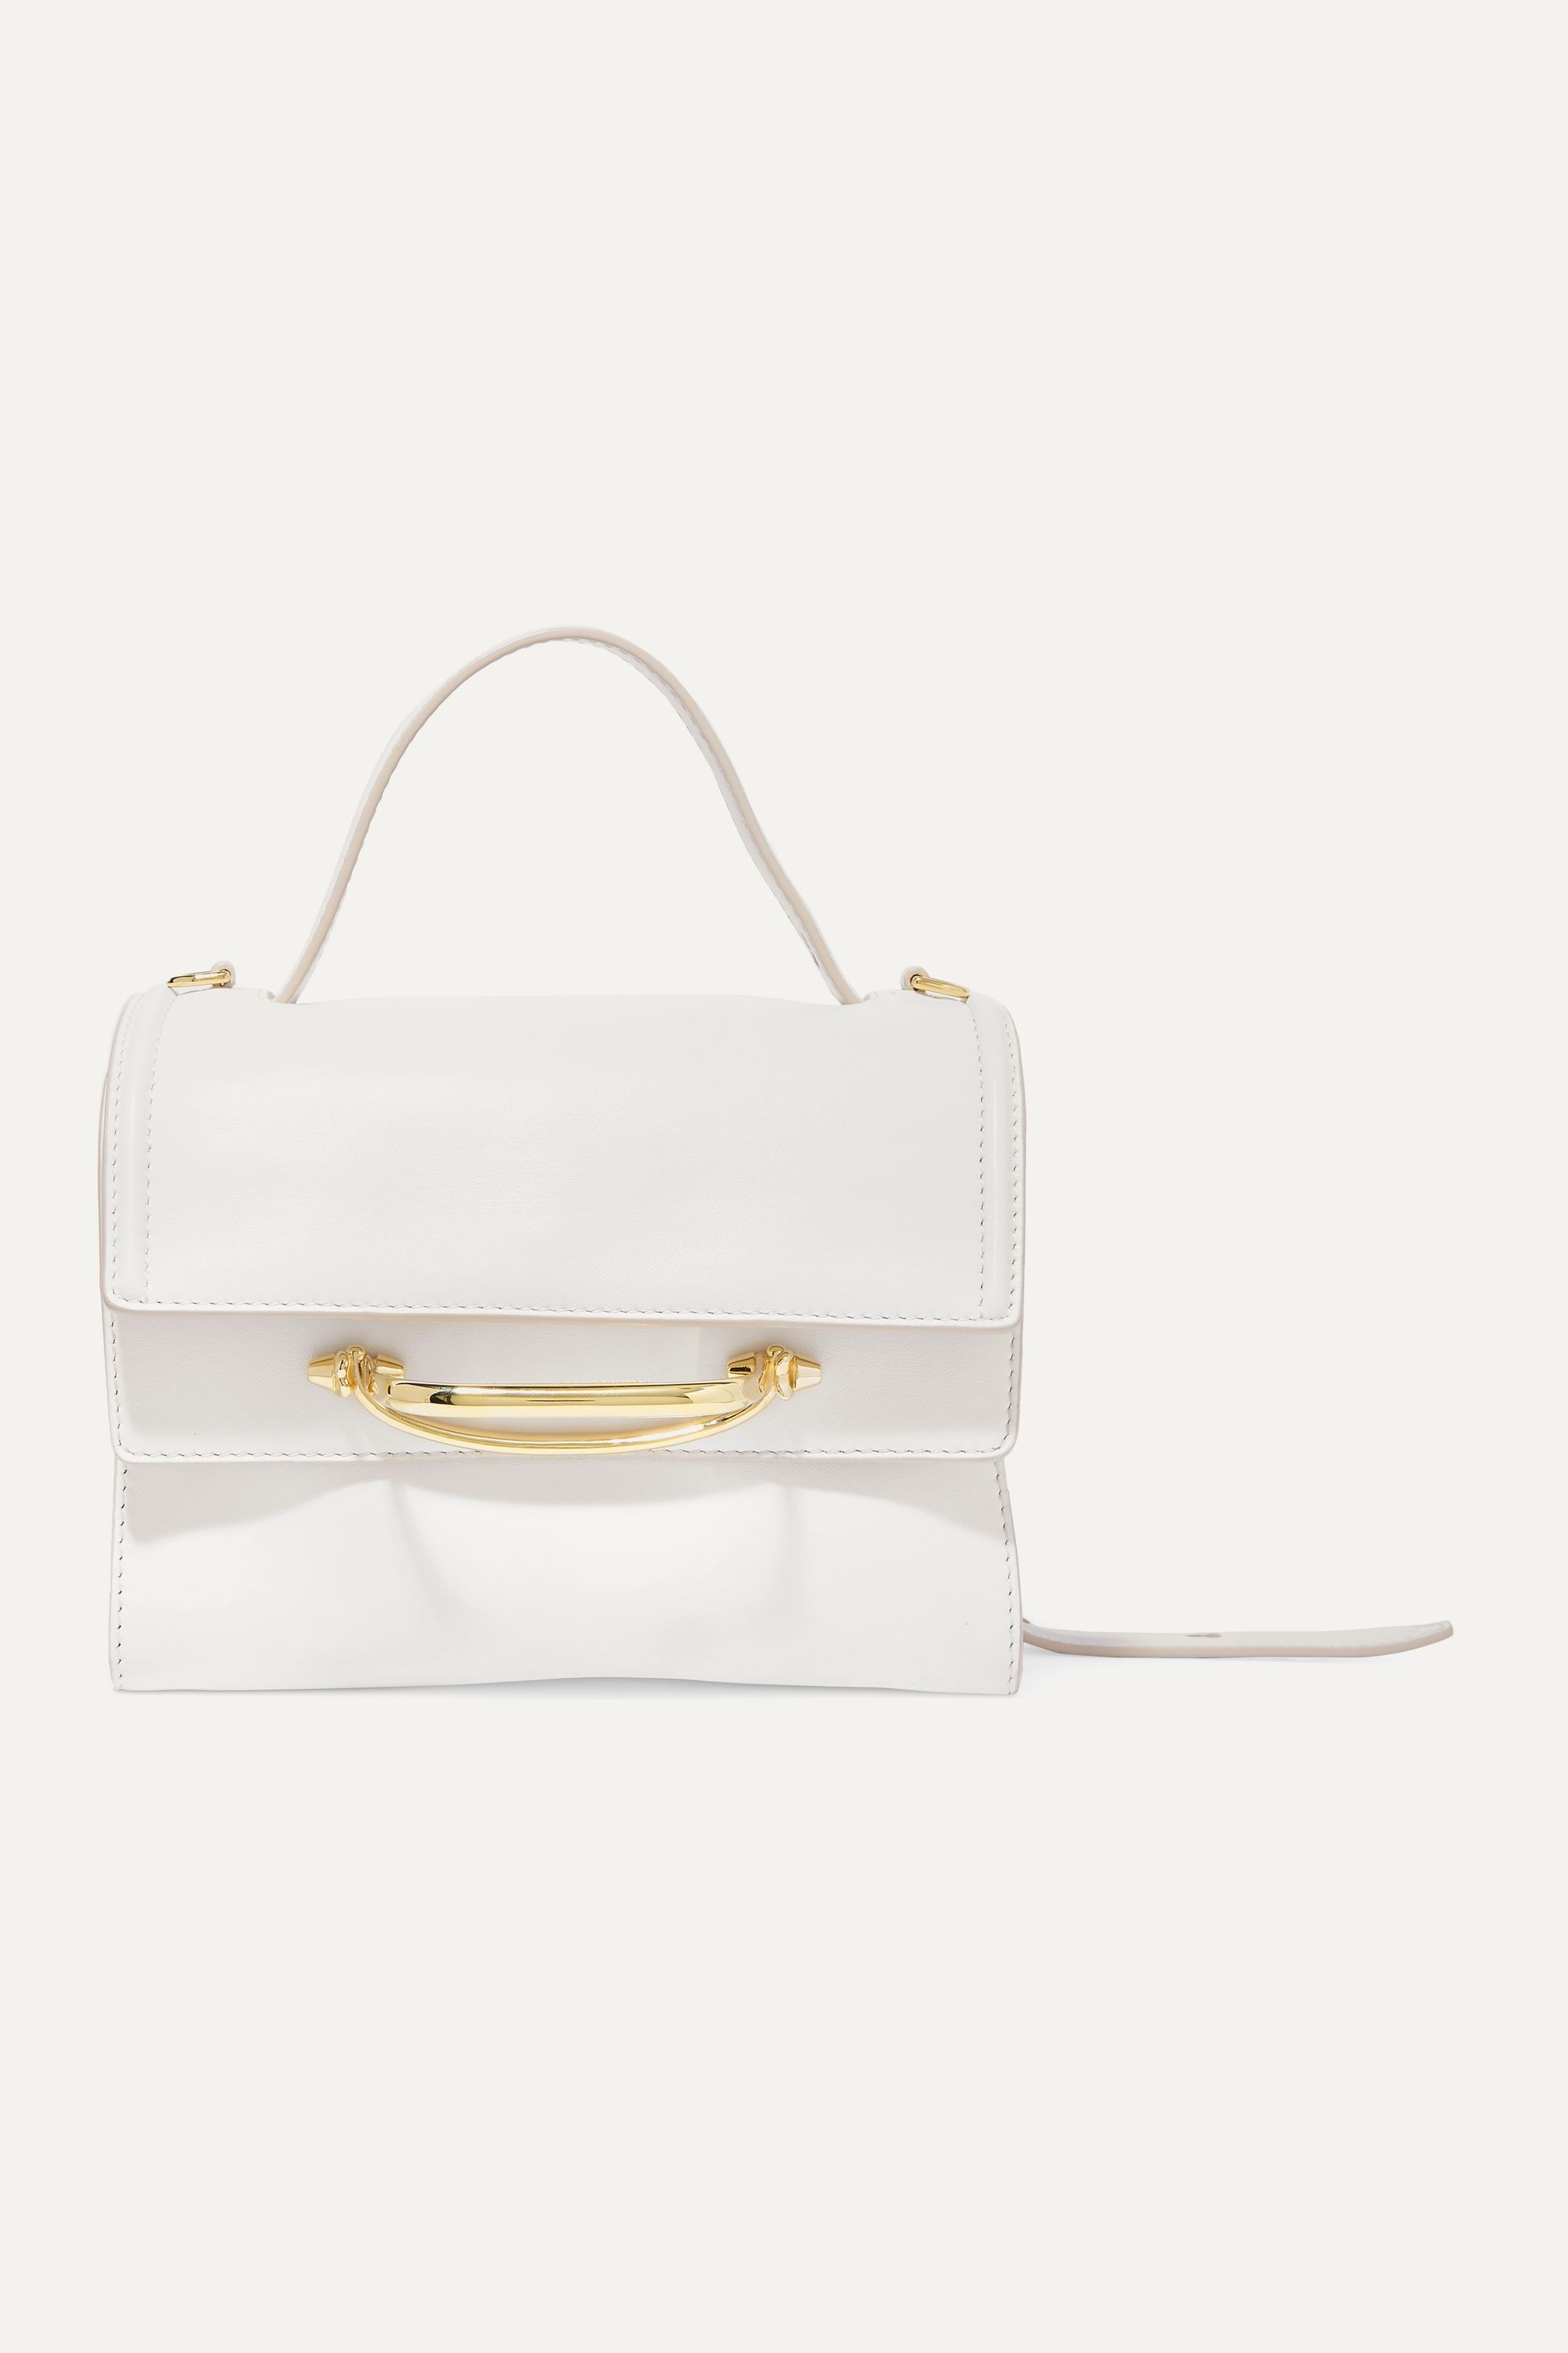 Alexander McQueen The Story small leather tote